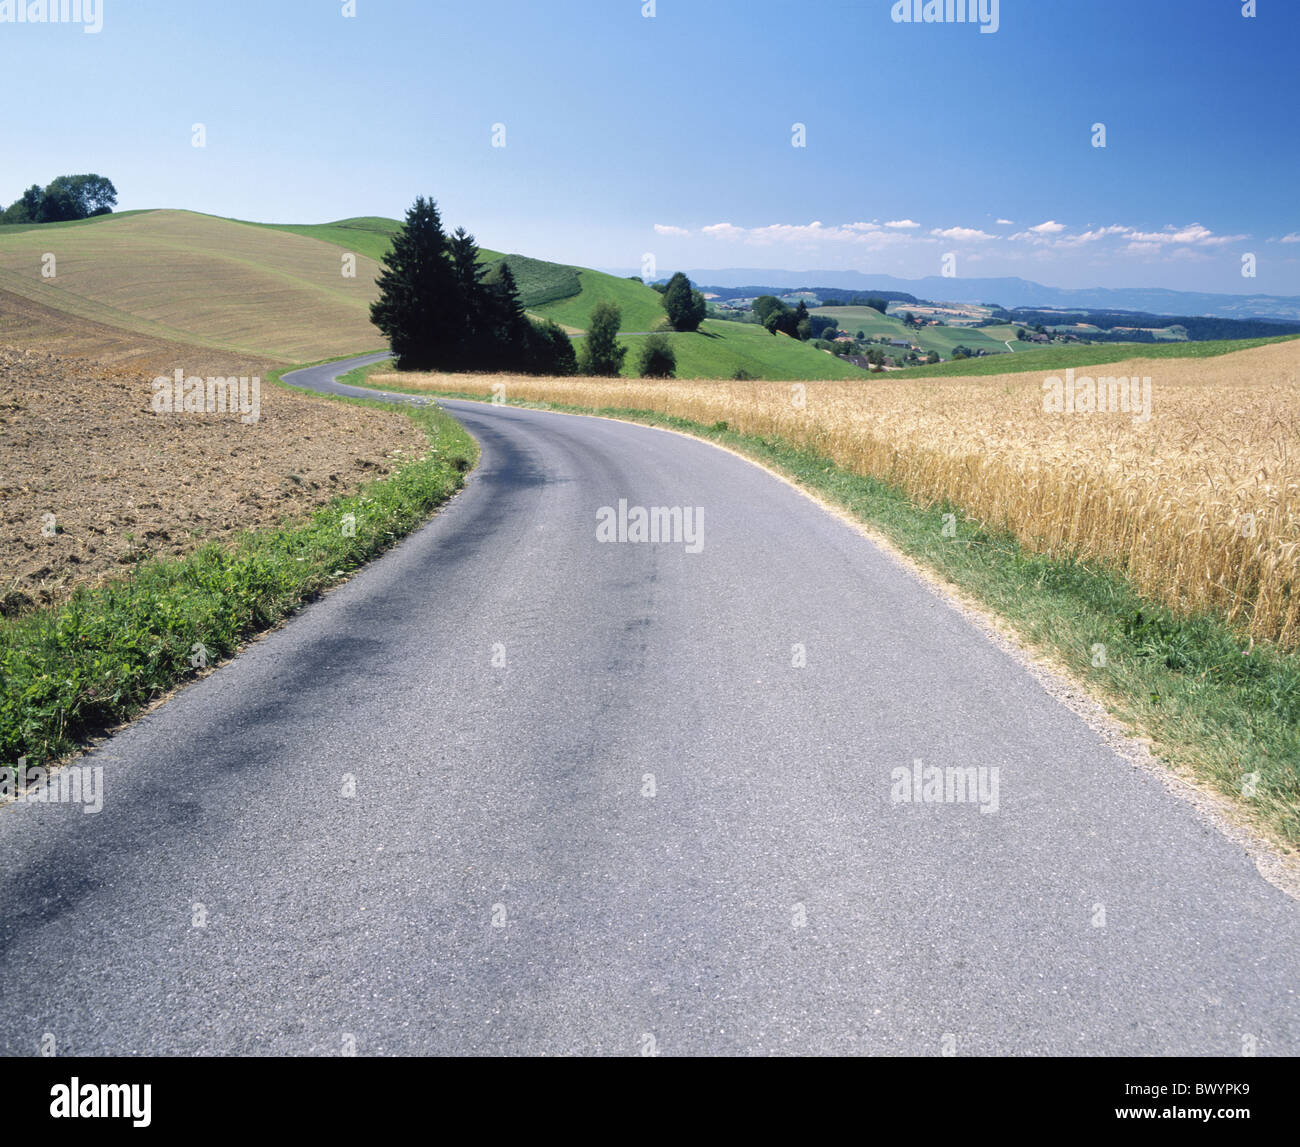 Emmental Eriswil fields hills canton Bern country road street agriculture Switzerland Europe street - Stock Image